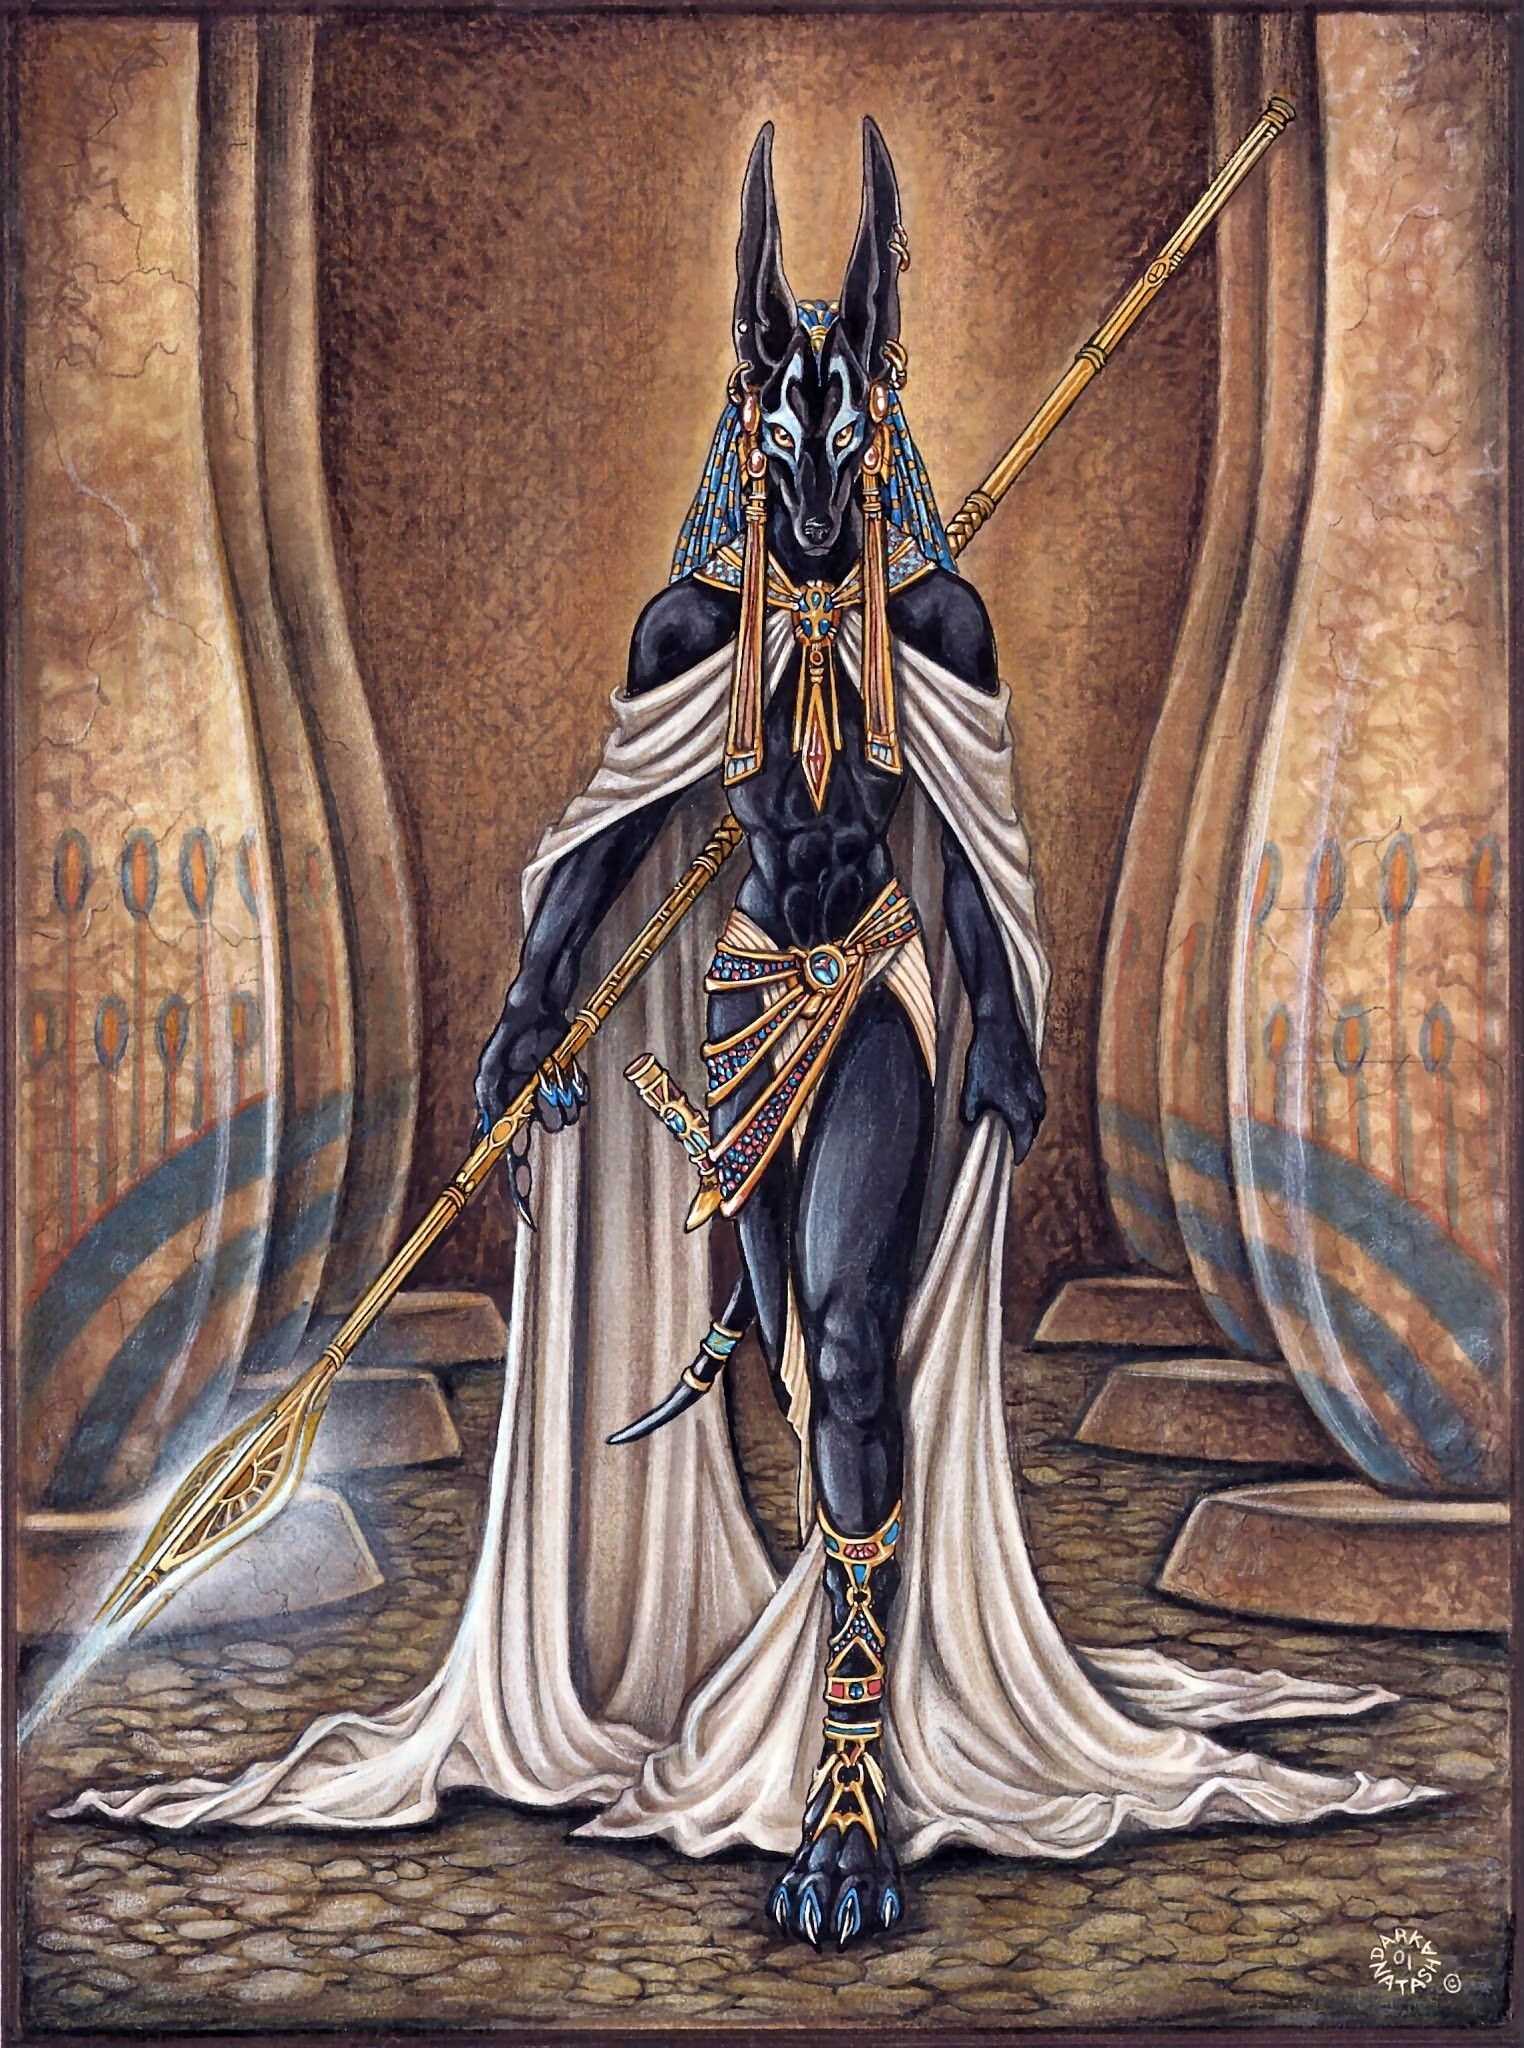 Anubis Egyptian God Wallpapers - Top Free Anubis Egyptian